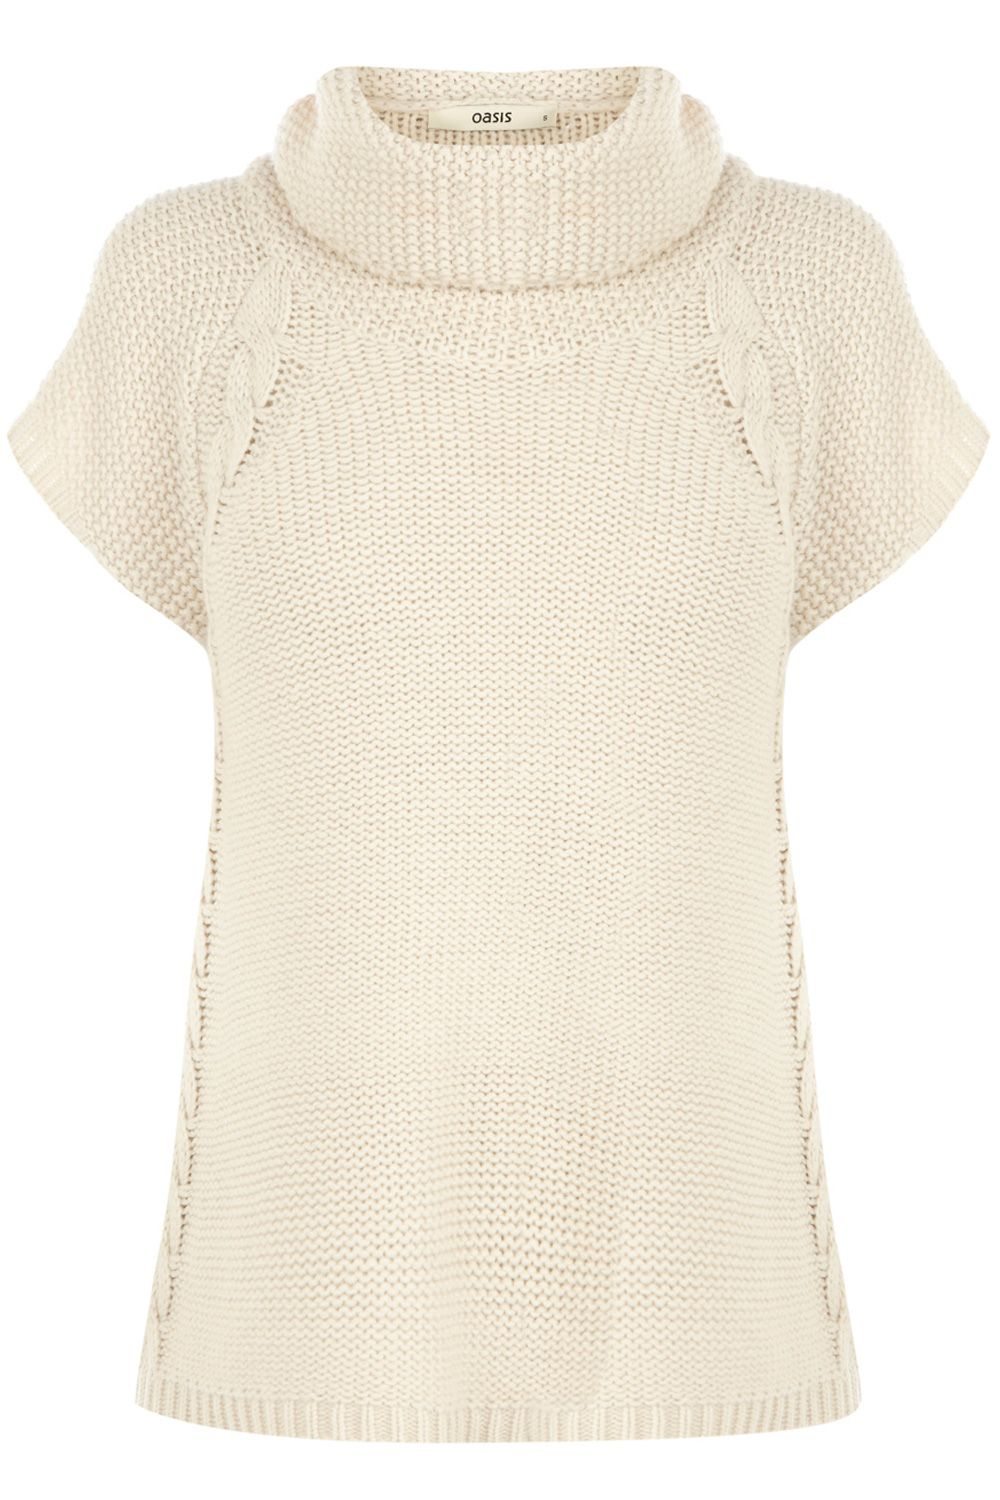 Cable Trapeze Knitted Jumper   Выкройки   Pinterest   Sacos ...